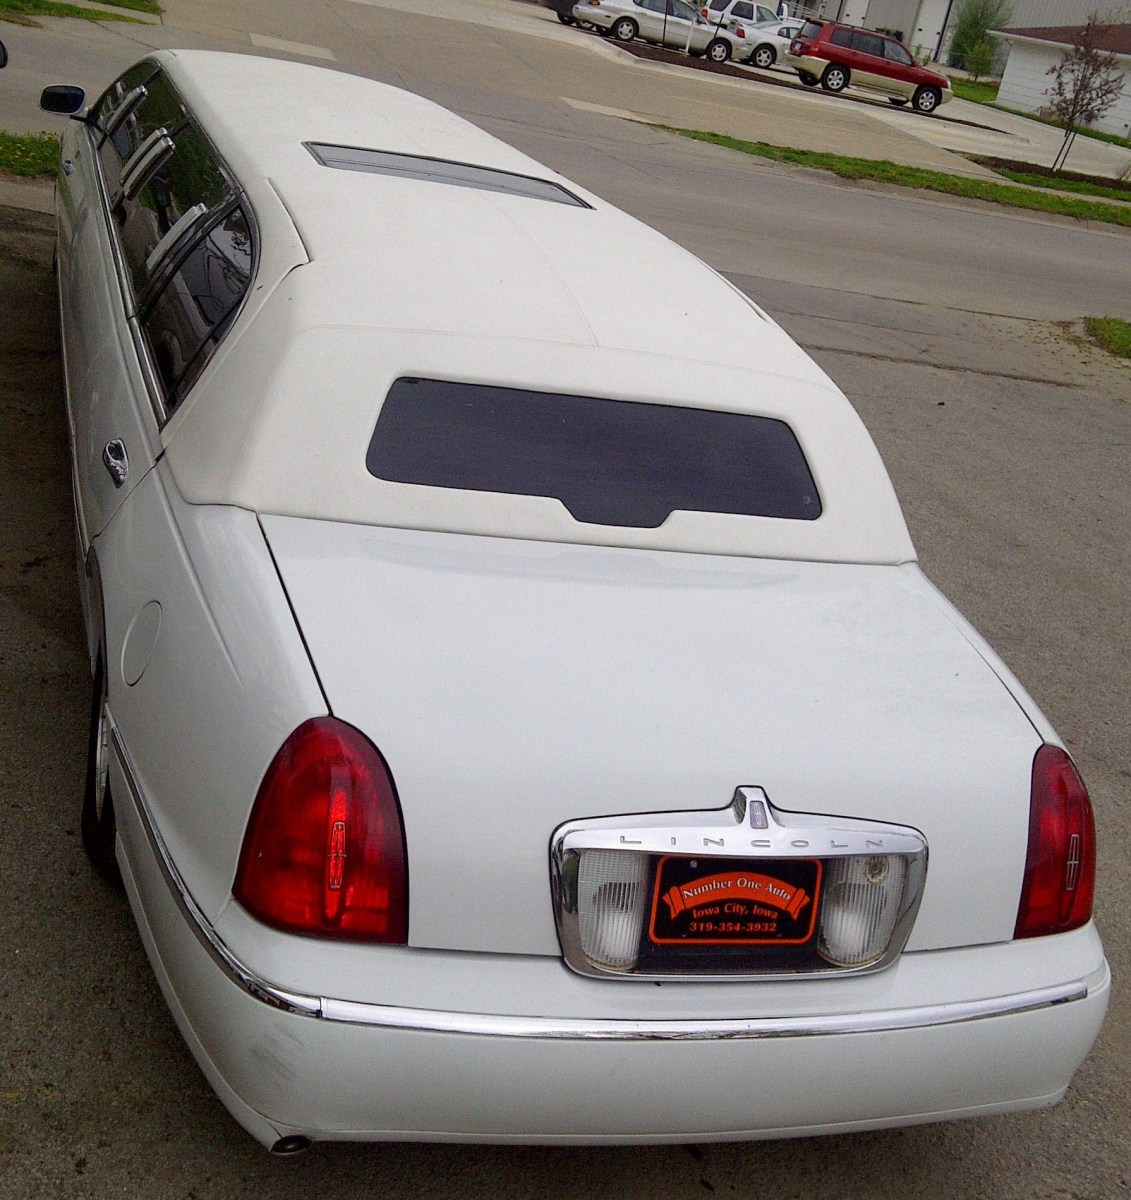 2000 Lincoln Town Car Limo, from back